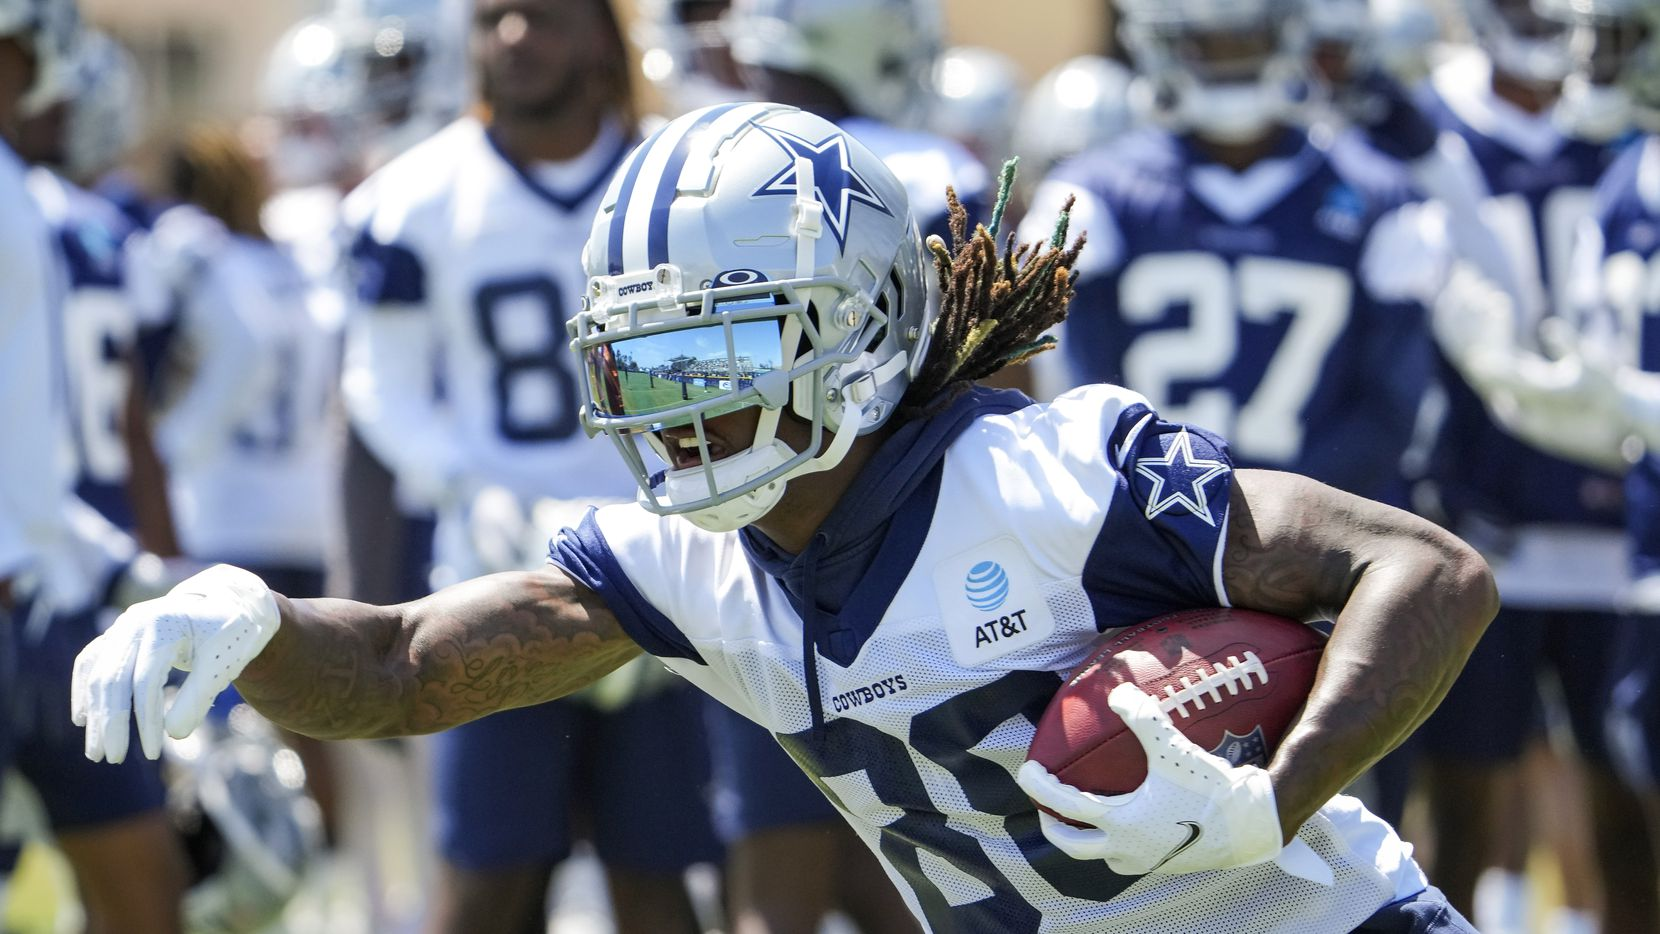 Dallas Cowboys wide receiver CeeDee Lamb (88) participates in a drill during the first practice of the team's training camp on Thursday, July 22, 2021, in Oxnard, Calif.